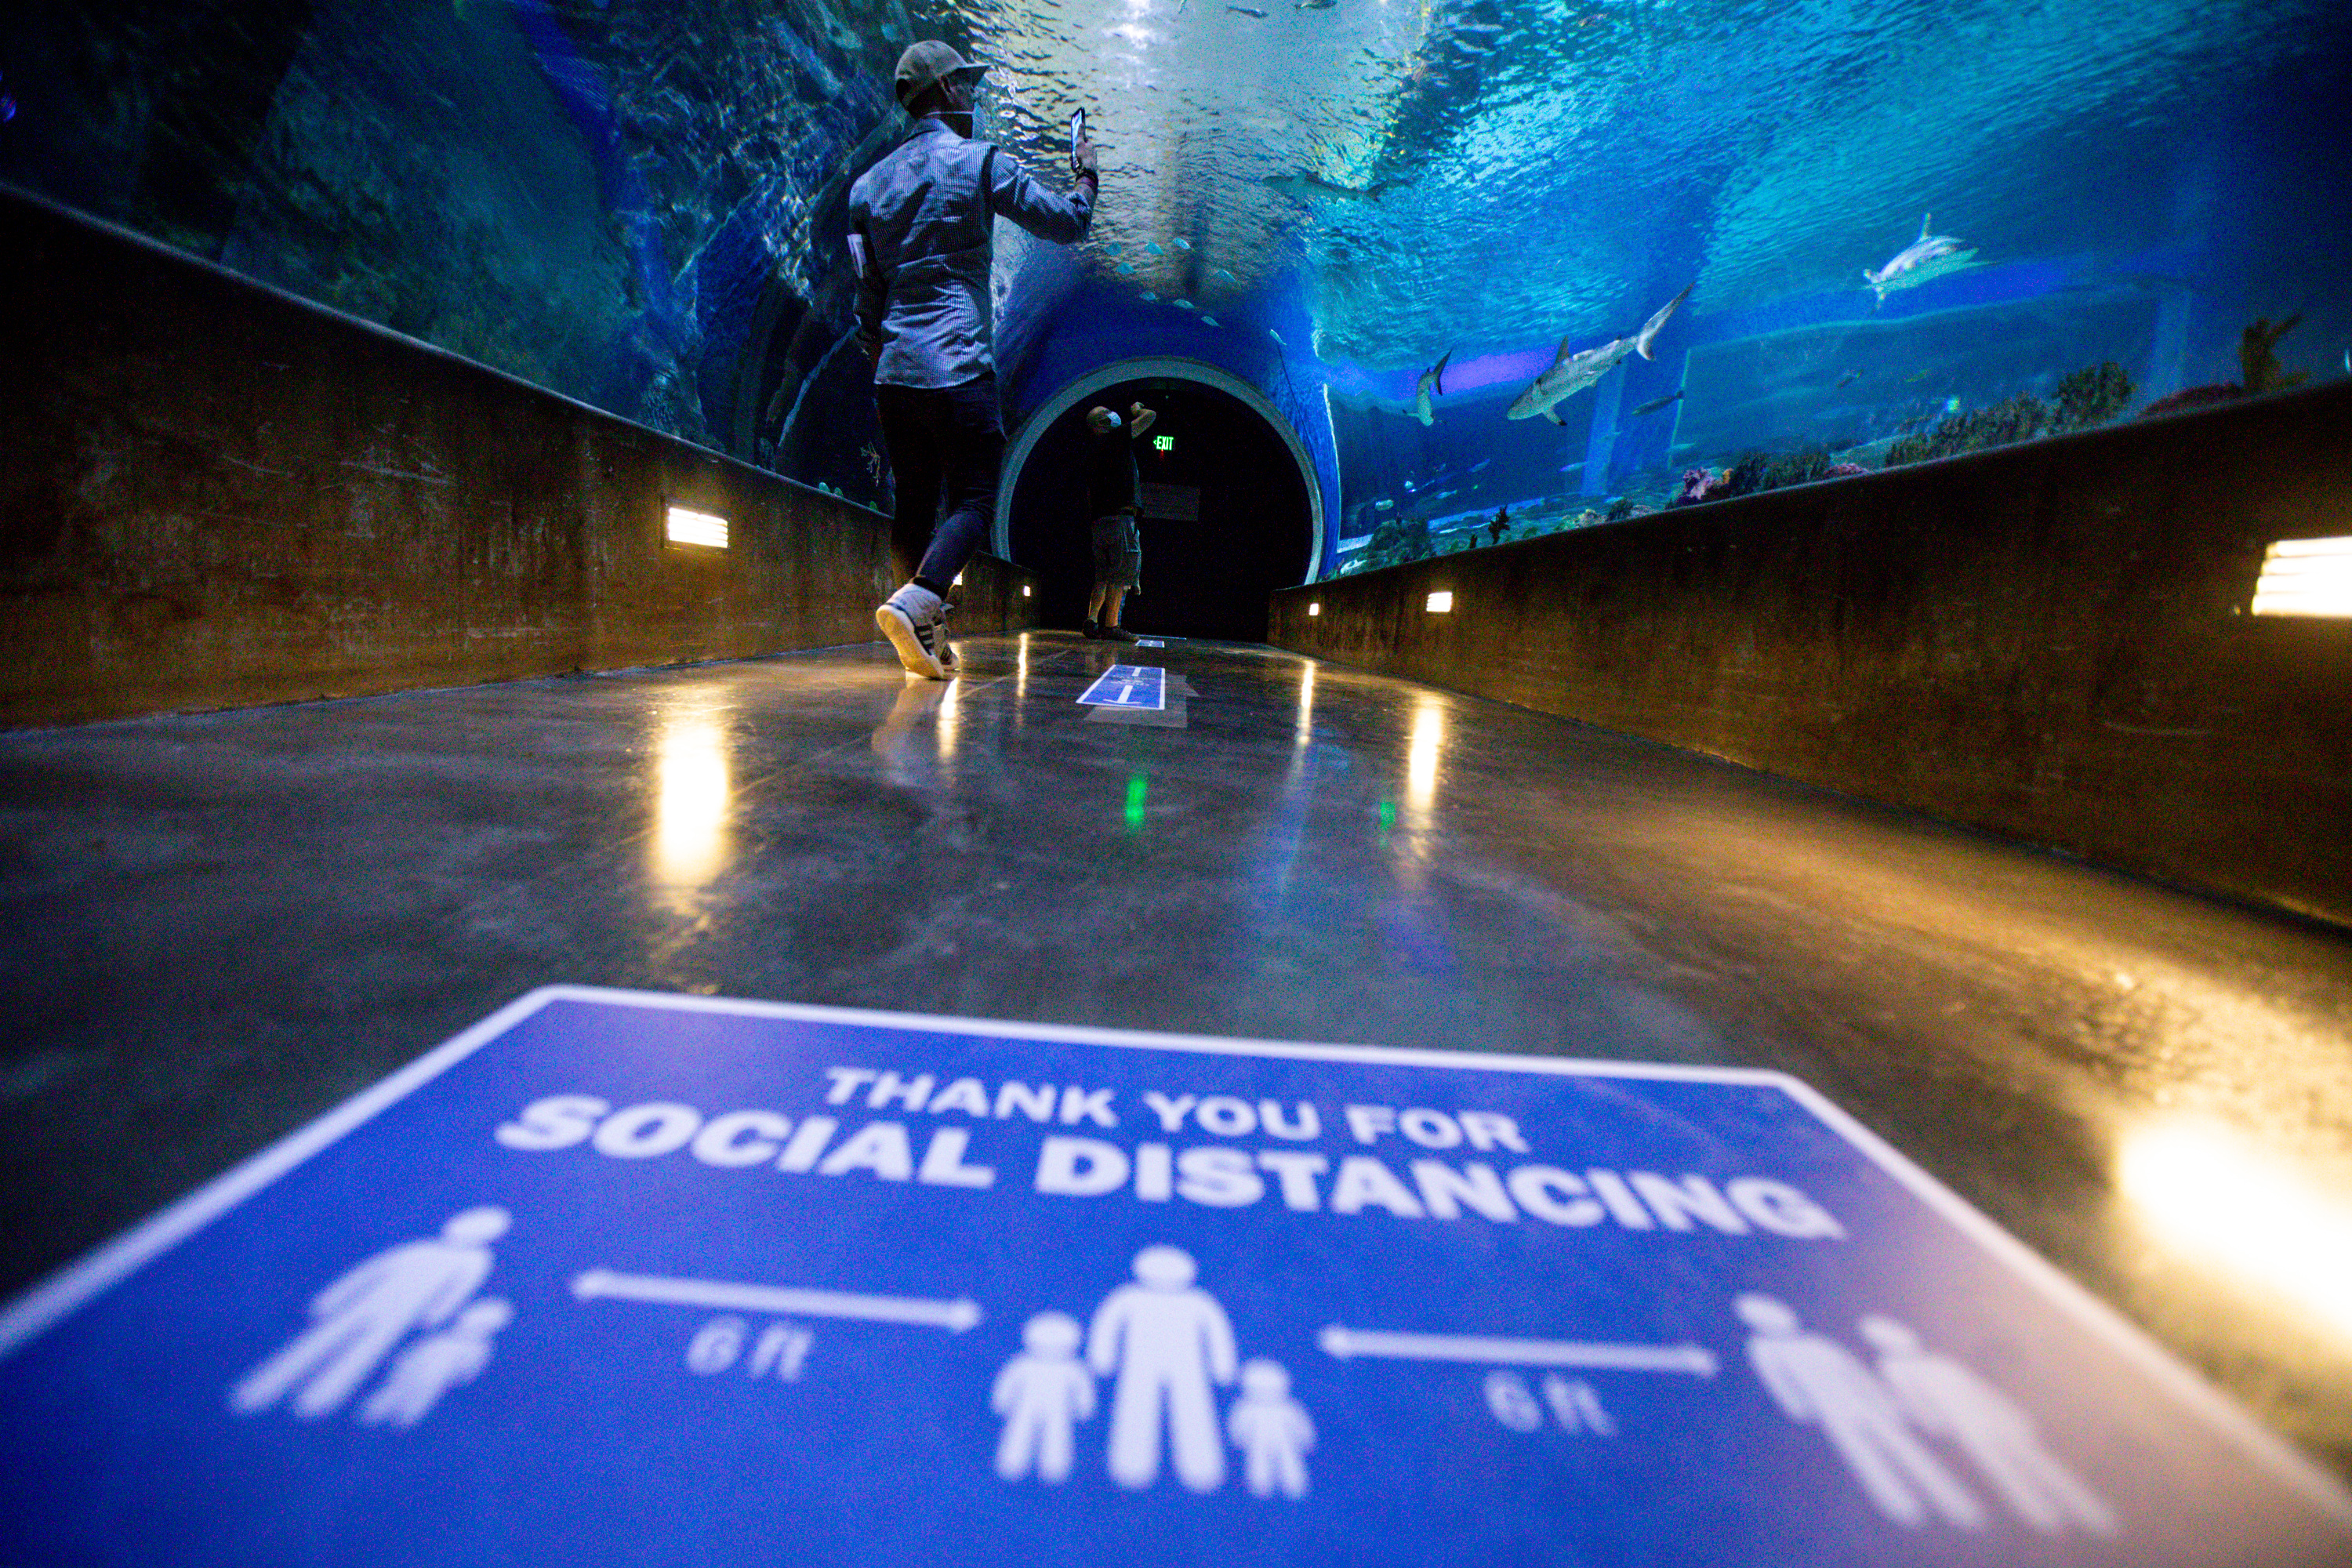 People visit the Loveland Living Planet Aquarium in Draper on Saturday, May 9, 2020. The aquarium reopened to guests with entry times beginning at 10 a.m. to the last entry time at 7 p.m., and online ticket purchasing amid the COVID-19 pandemic. Signs throughout the aquarium encourage visitors to wear masks and practice social distancing.